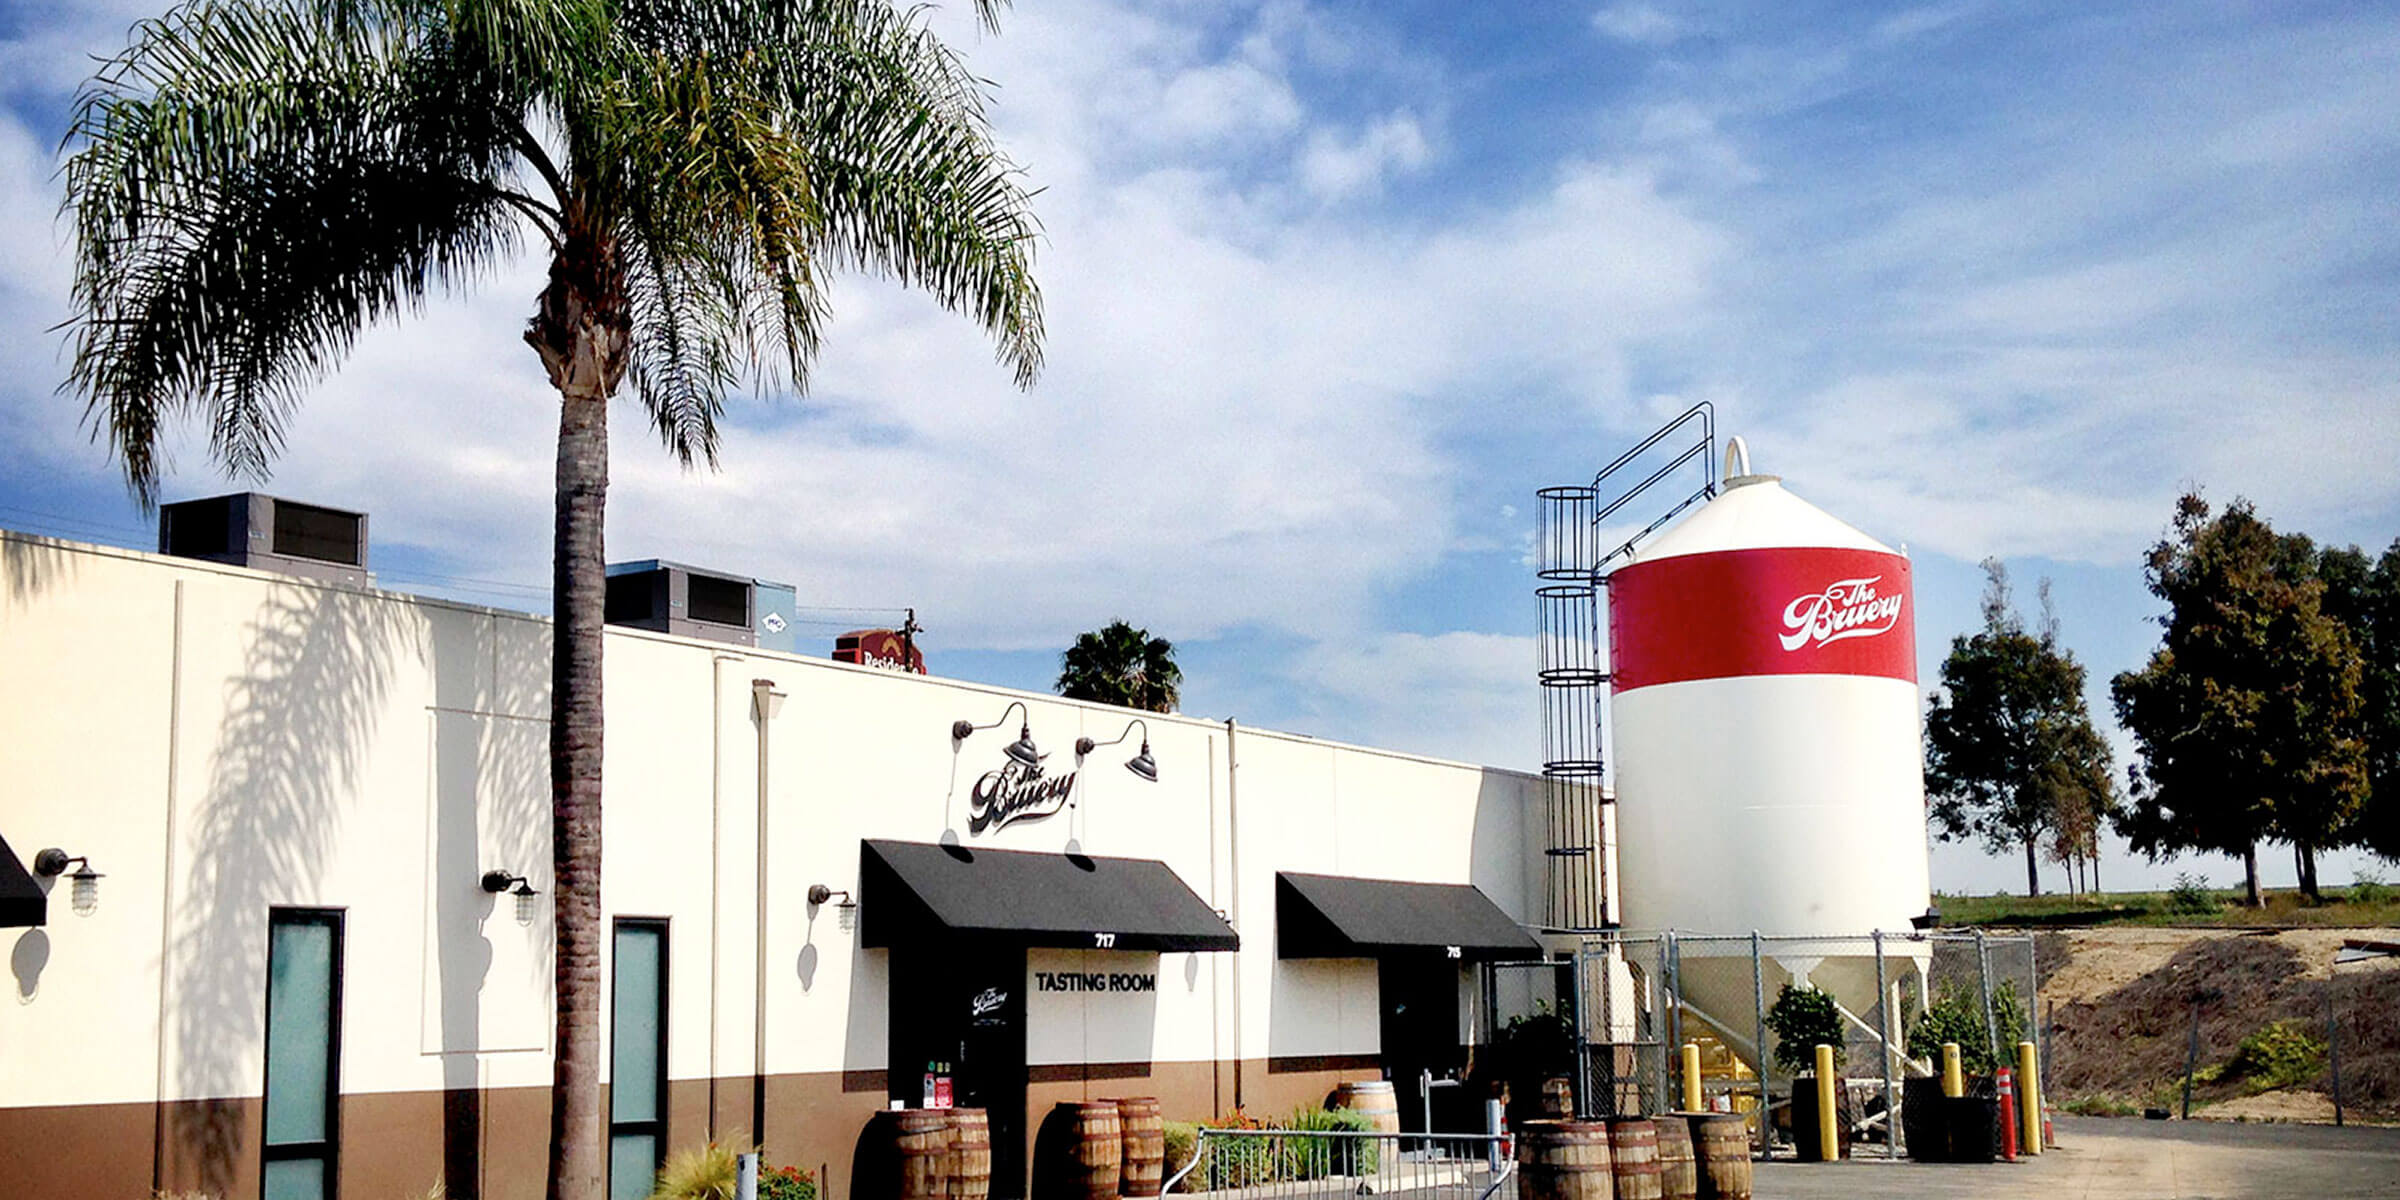 Outside The Bruery tasting room in Placentia, California